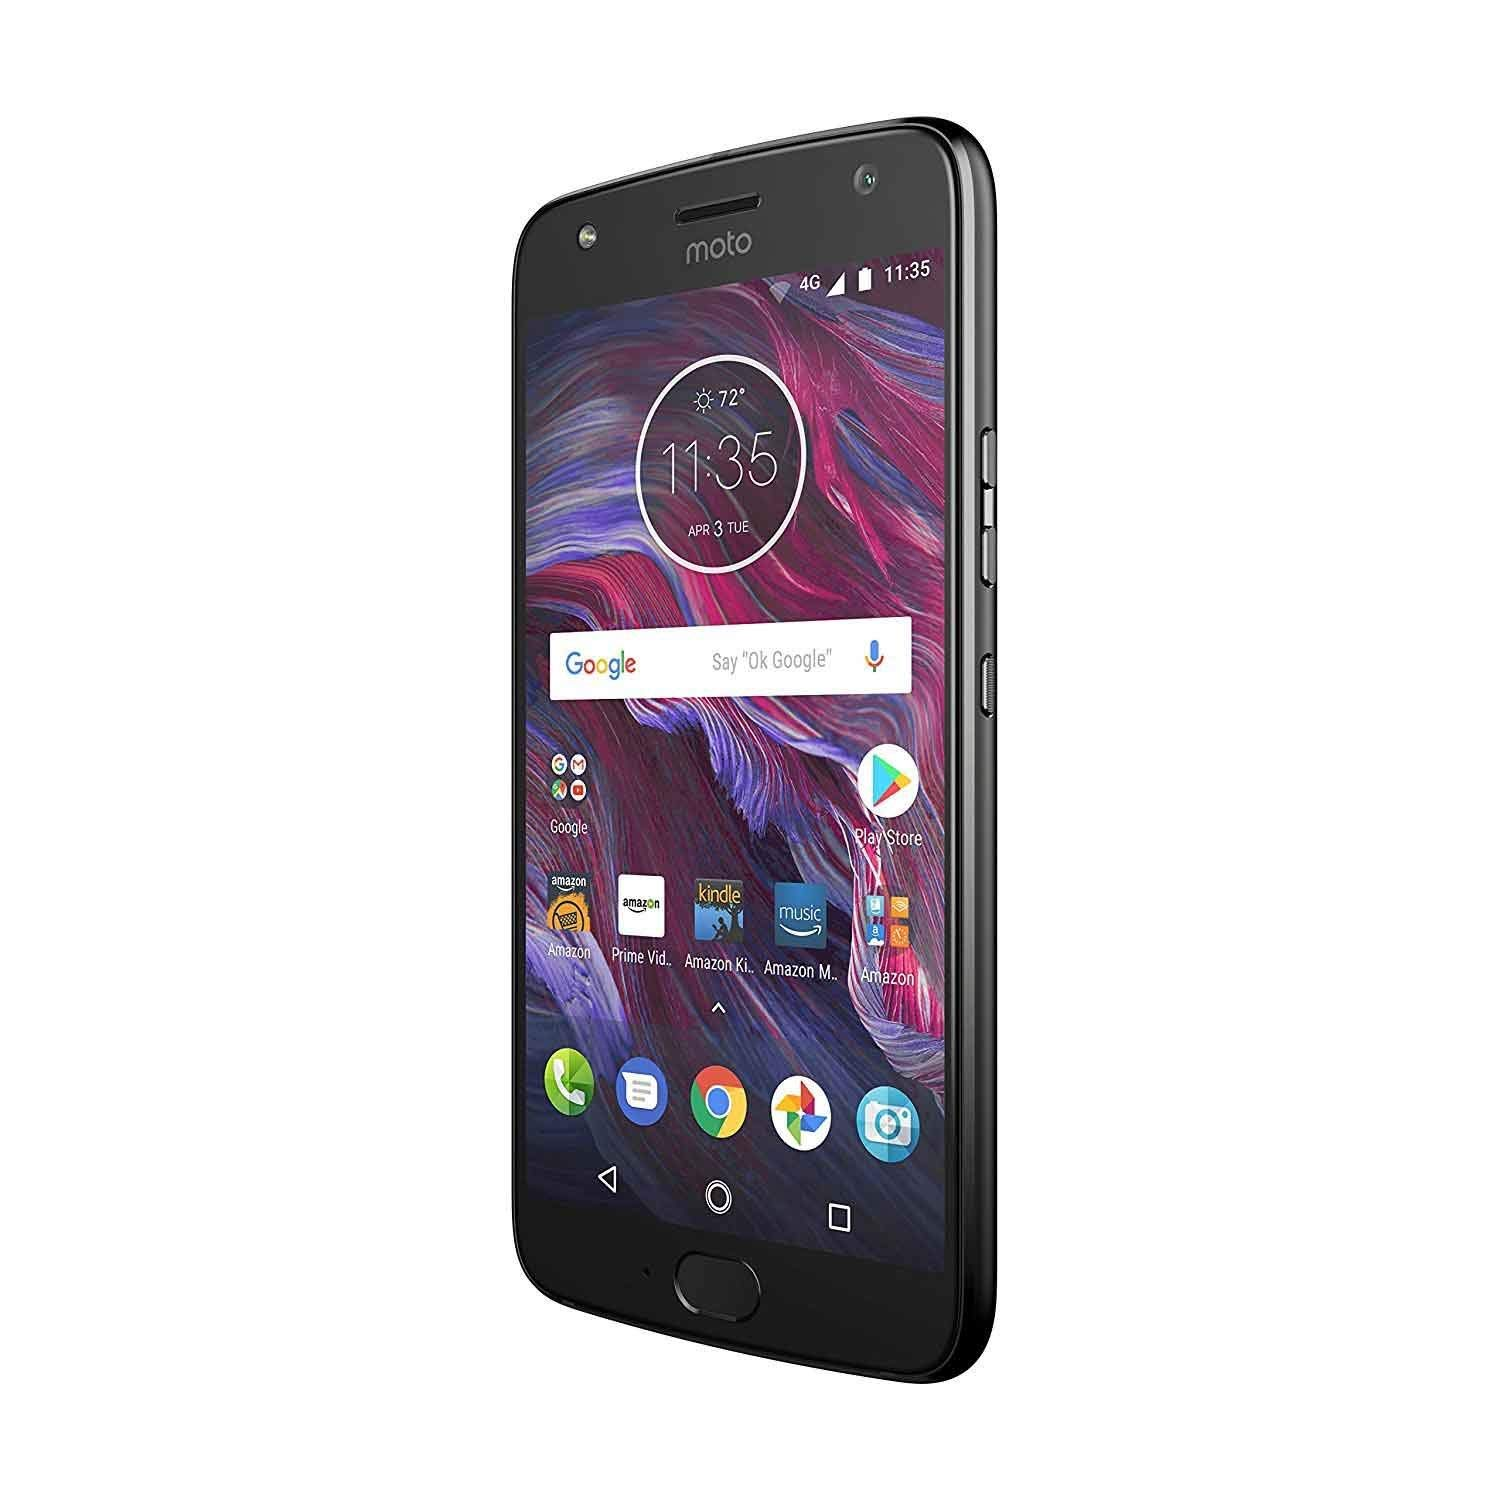 Moto X (4th Generation) - with Amazon Alexa hands-free – 32 GB - Unlocked – Super Black - Prime Exclusive by Motorola (Image #3)